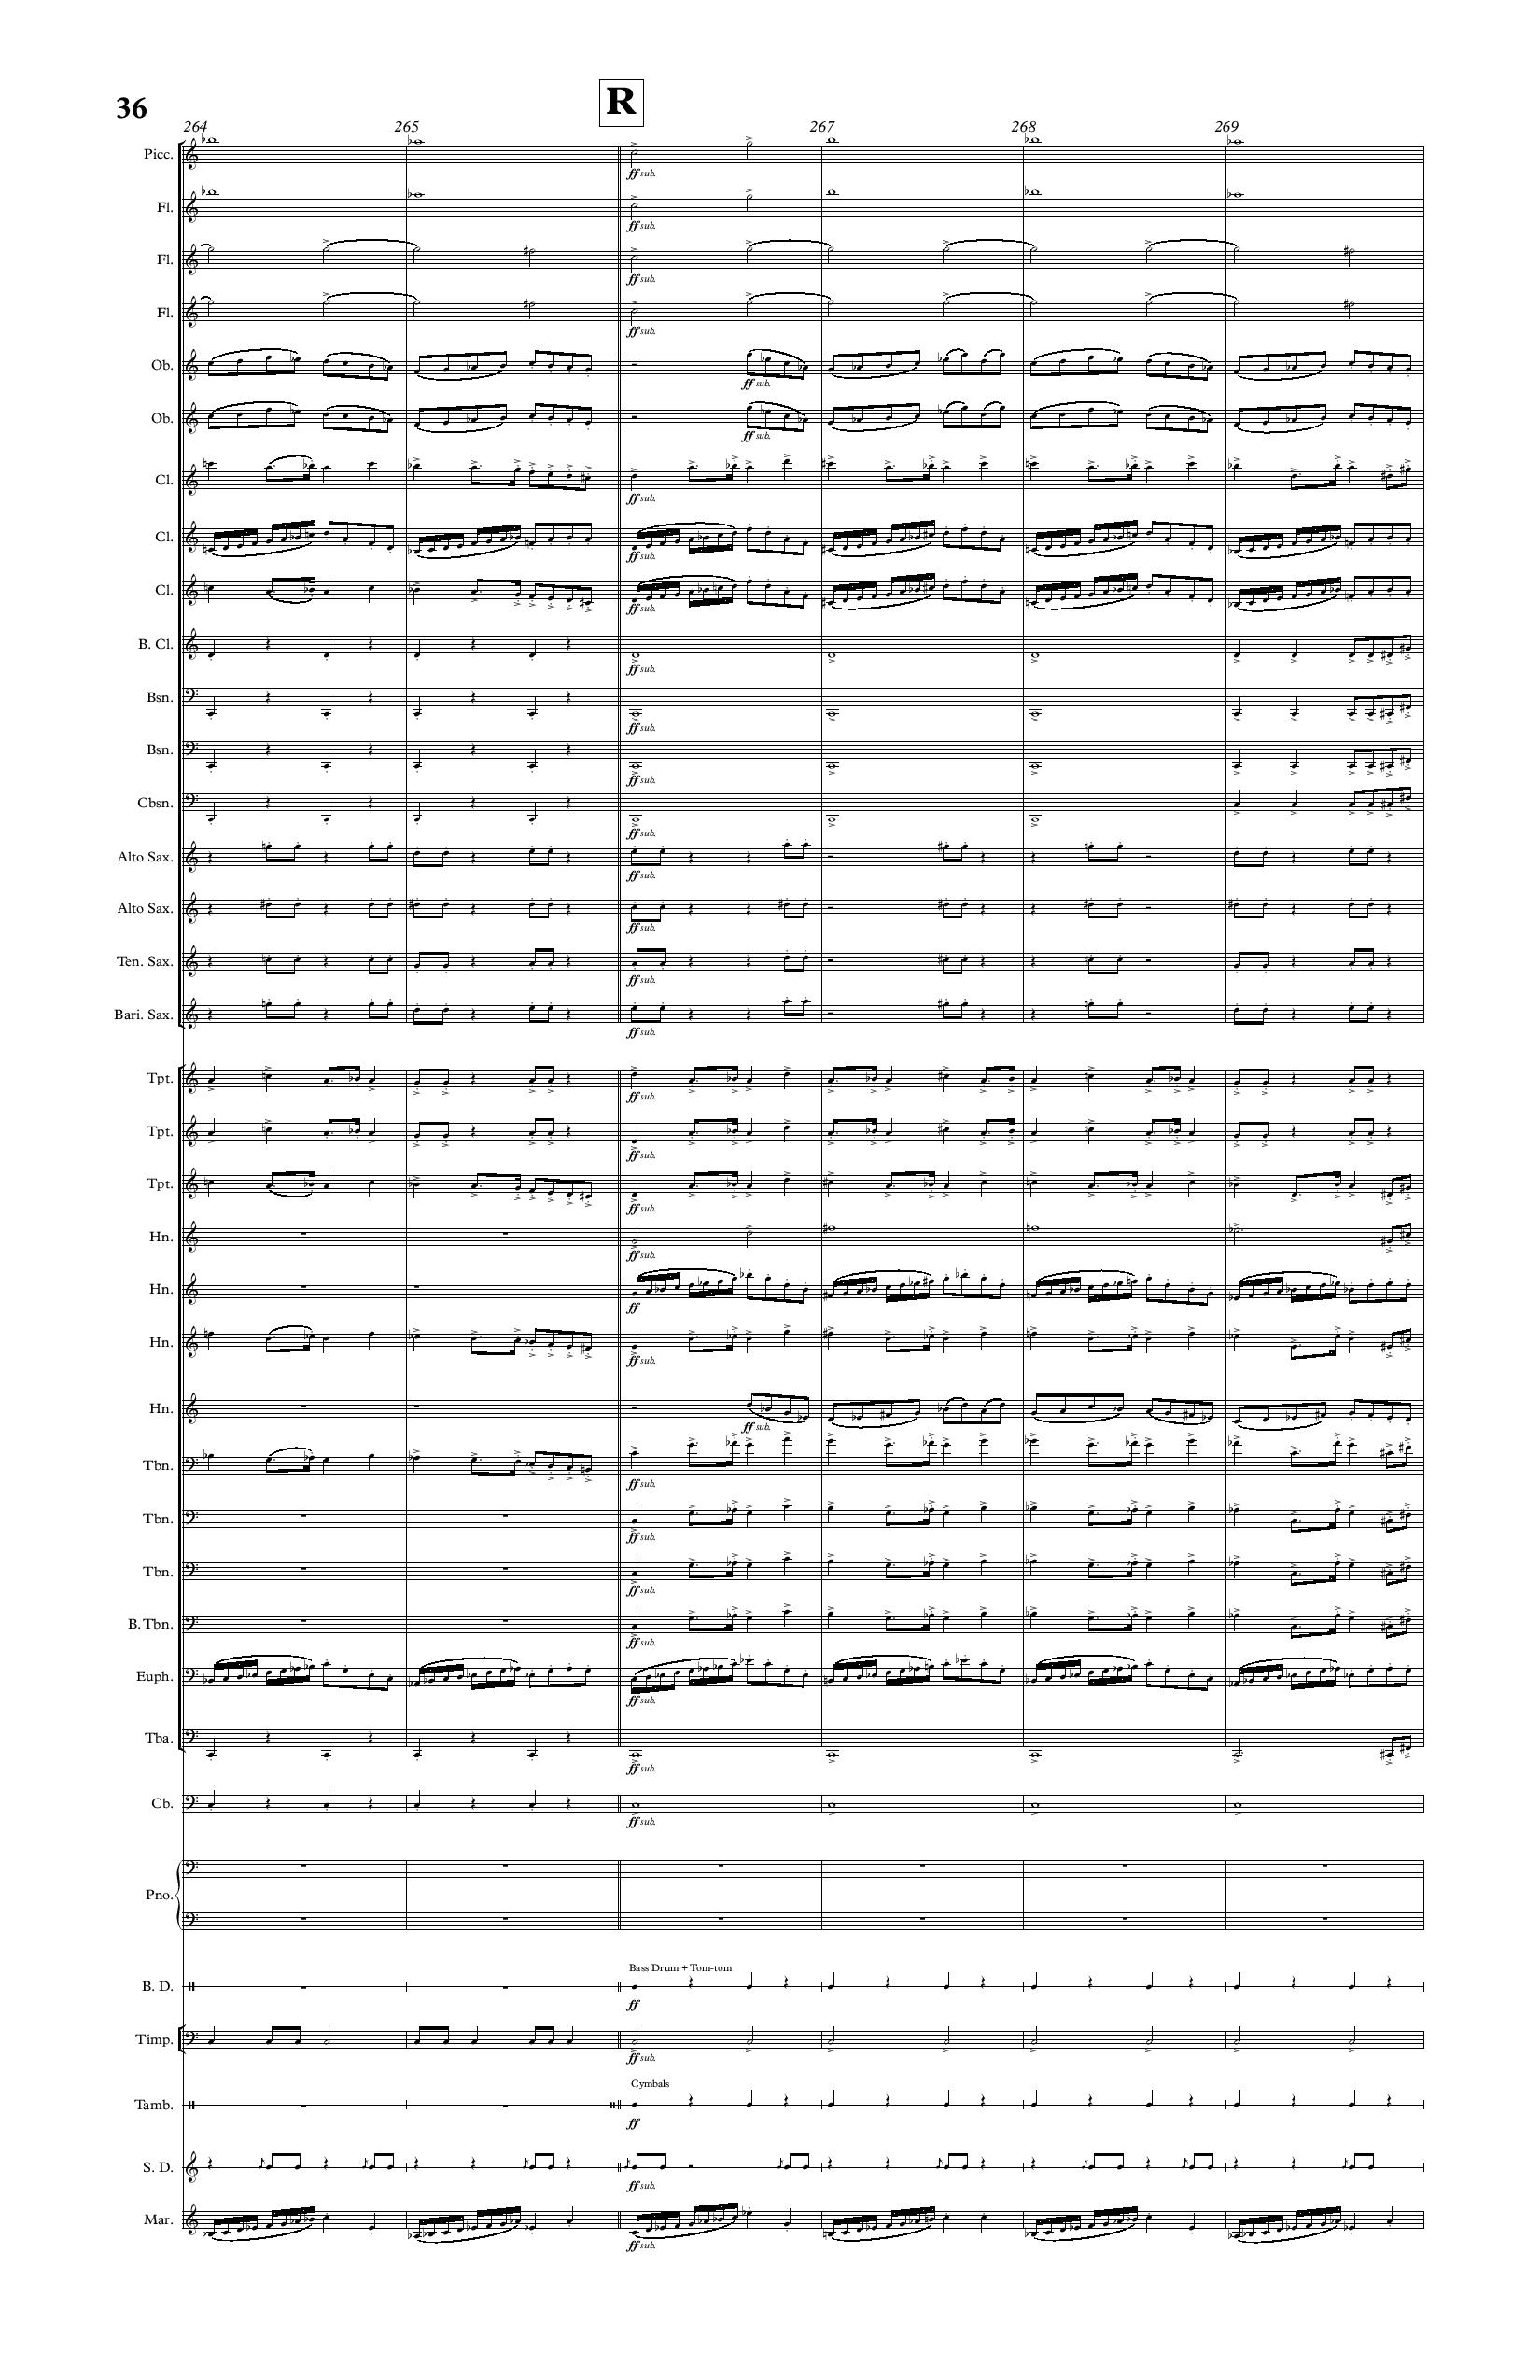 Rupture Full Transposed Score - Full Score (1)-page-036